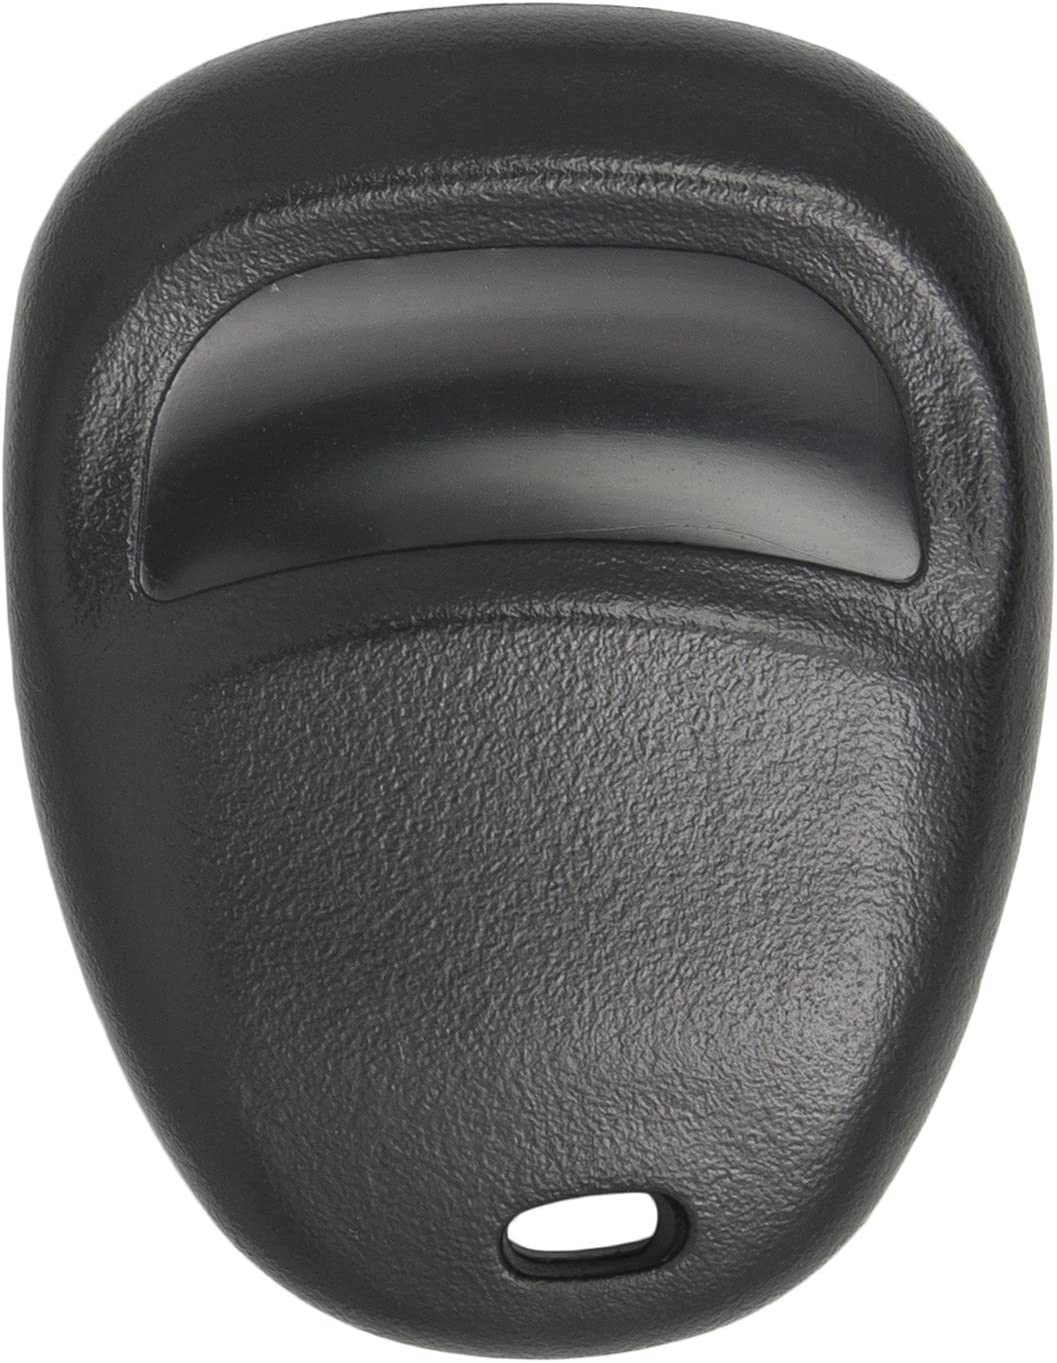 2 Pack Keyless2Go Keyless Entry Remote Car Key Fob for Select Vehicles That use 10443537 KOBLEAR1XT Remote